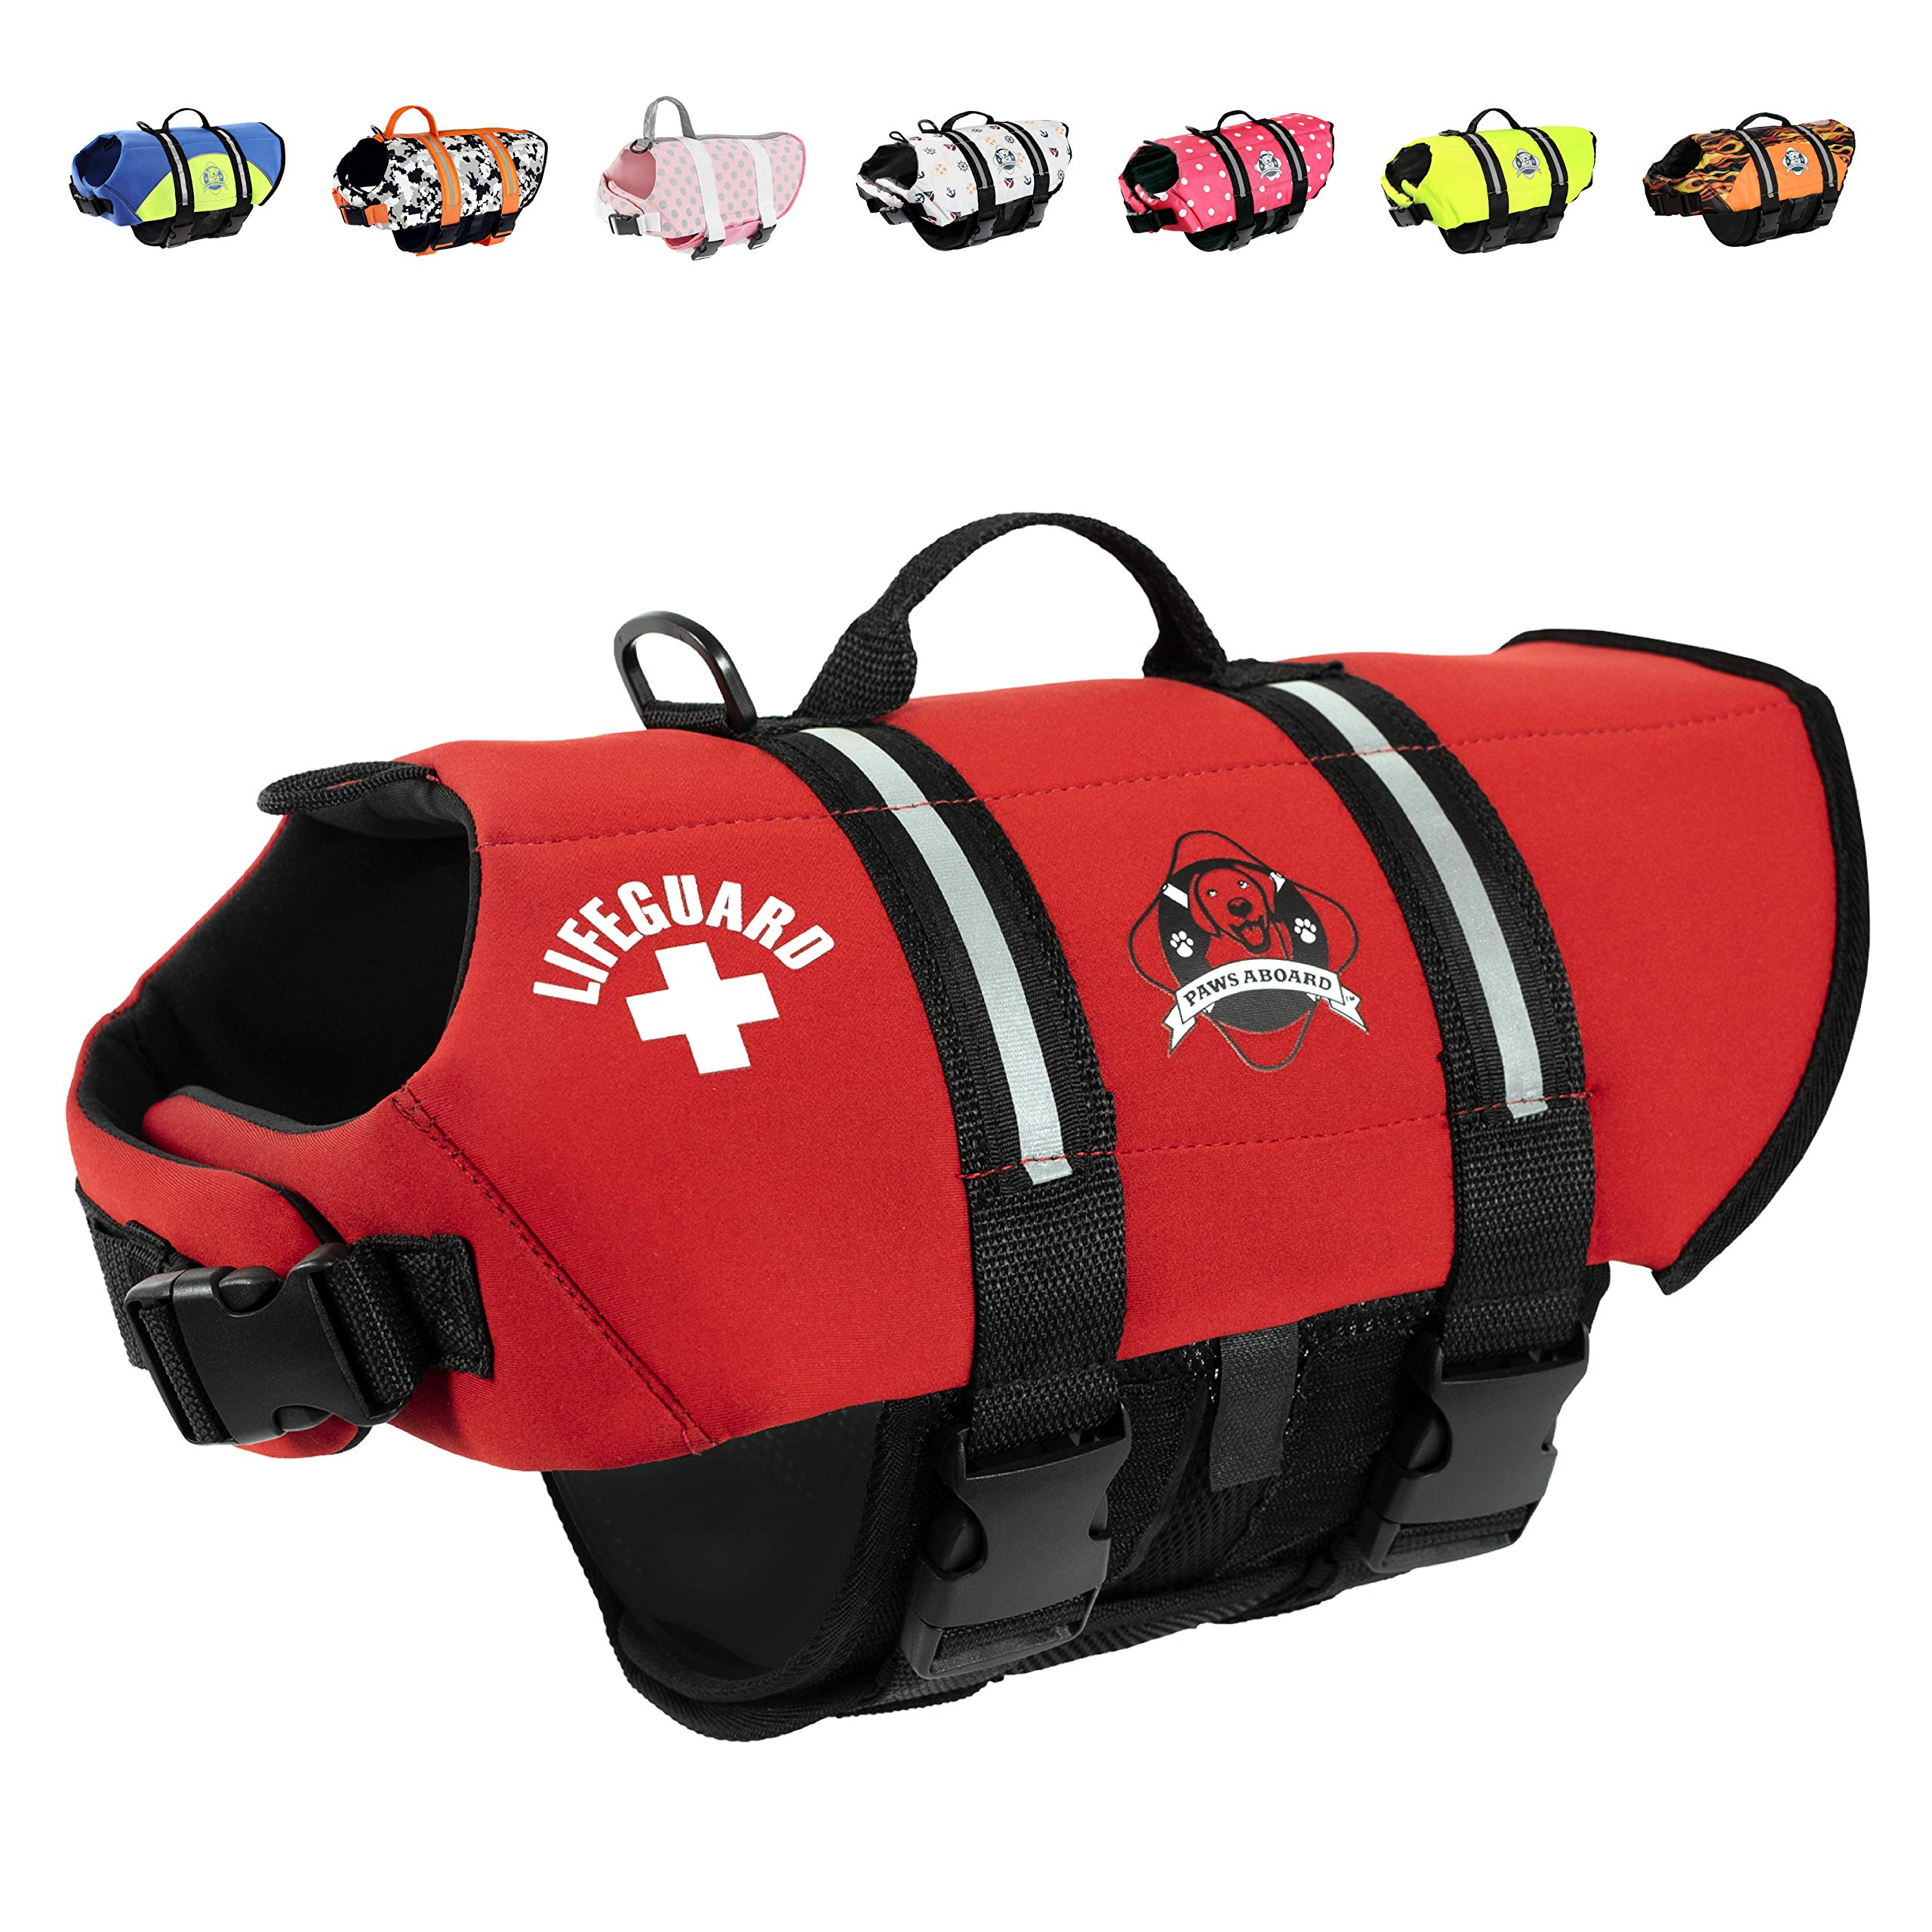 Paws Aboard Dog Life Jacket,  Neoprene Dog Life Vest for Swimming and Boating - Red by Paws Aboard